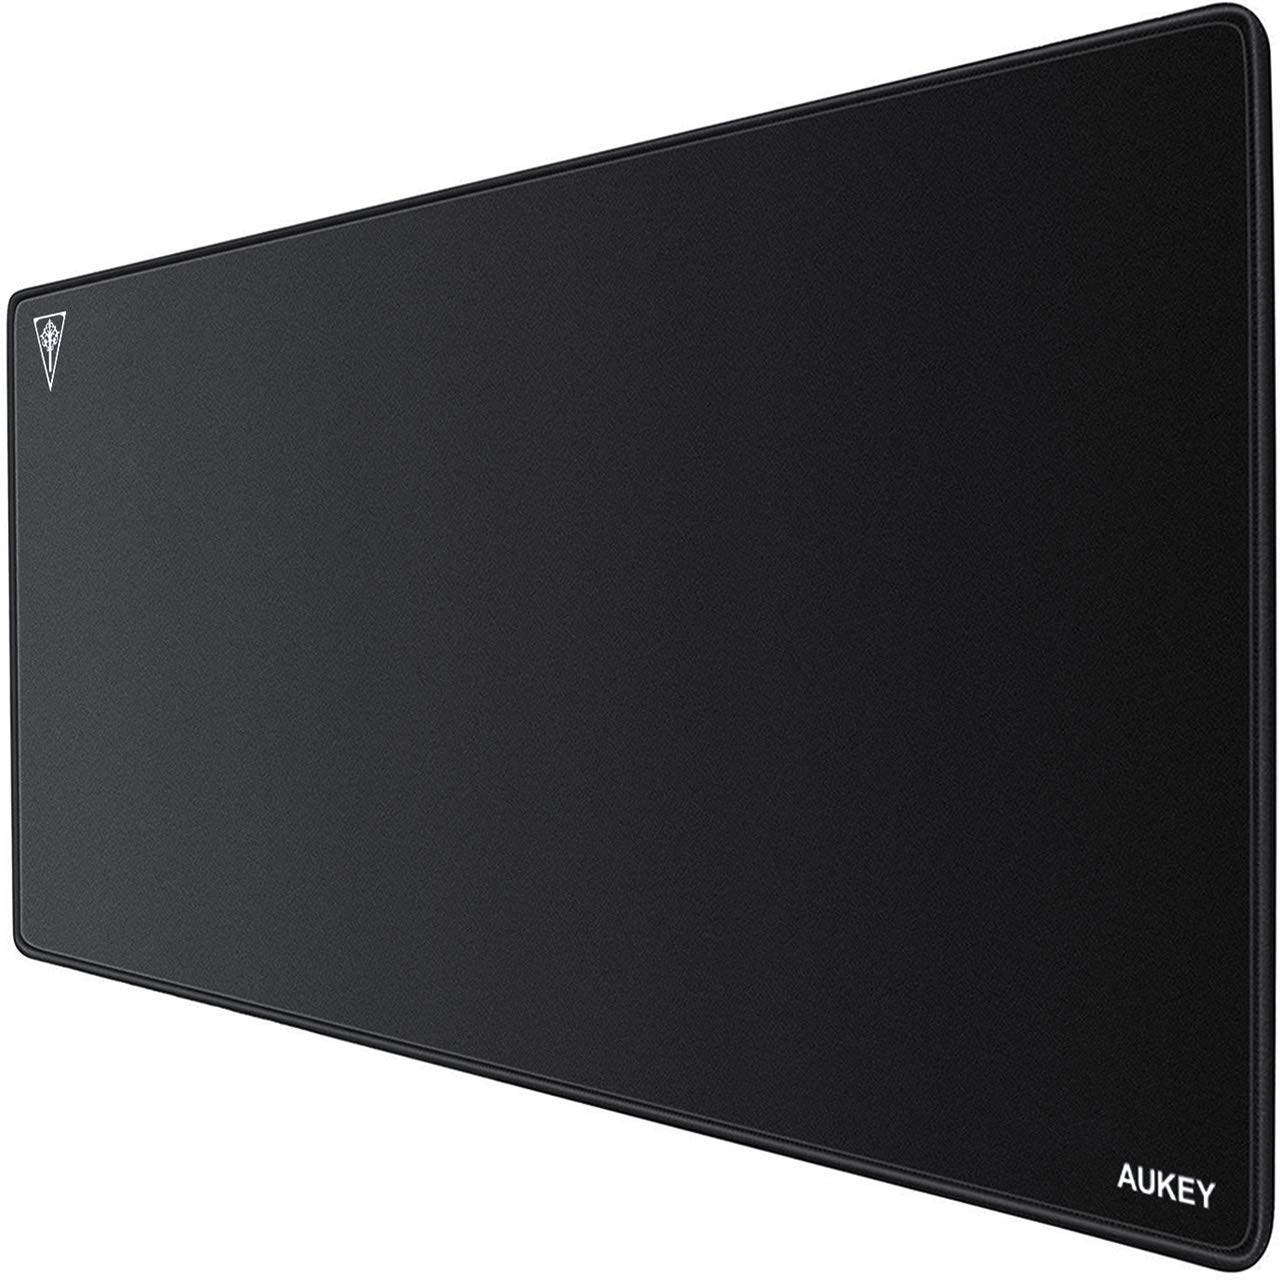 AUKEY Gaming Mouse Pad Large XXL (35.4×15.75×0.15in) Thick Extended Mouse Mat Non-Slip Spill-Resistant Desk Pad with Special-Textured Surface, Anti-Fray Stitched Edges for Keyboard, PC - Black by AUKEY